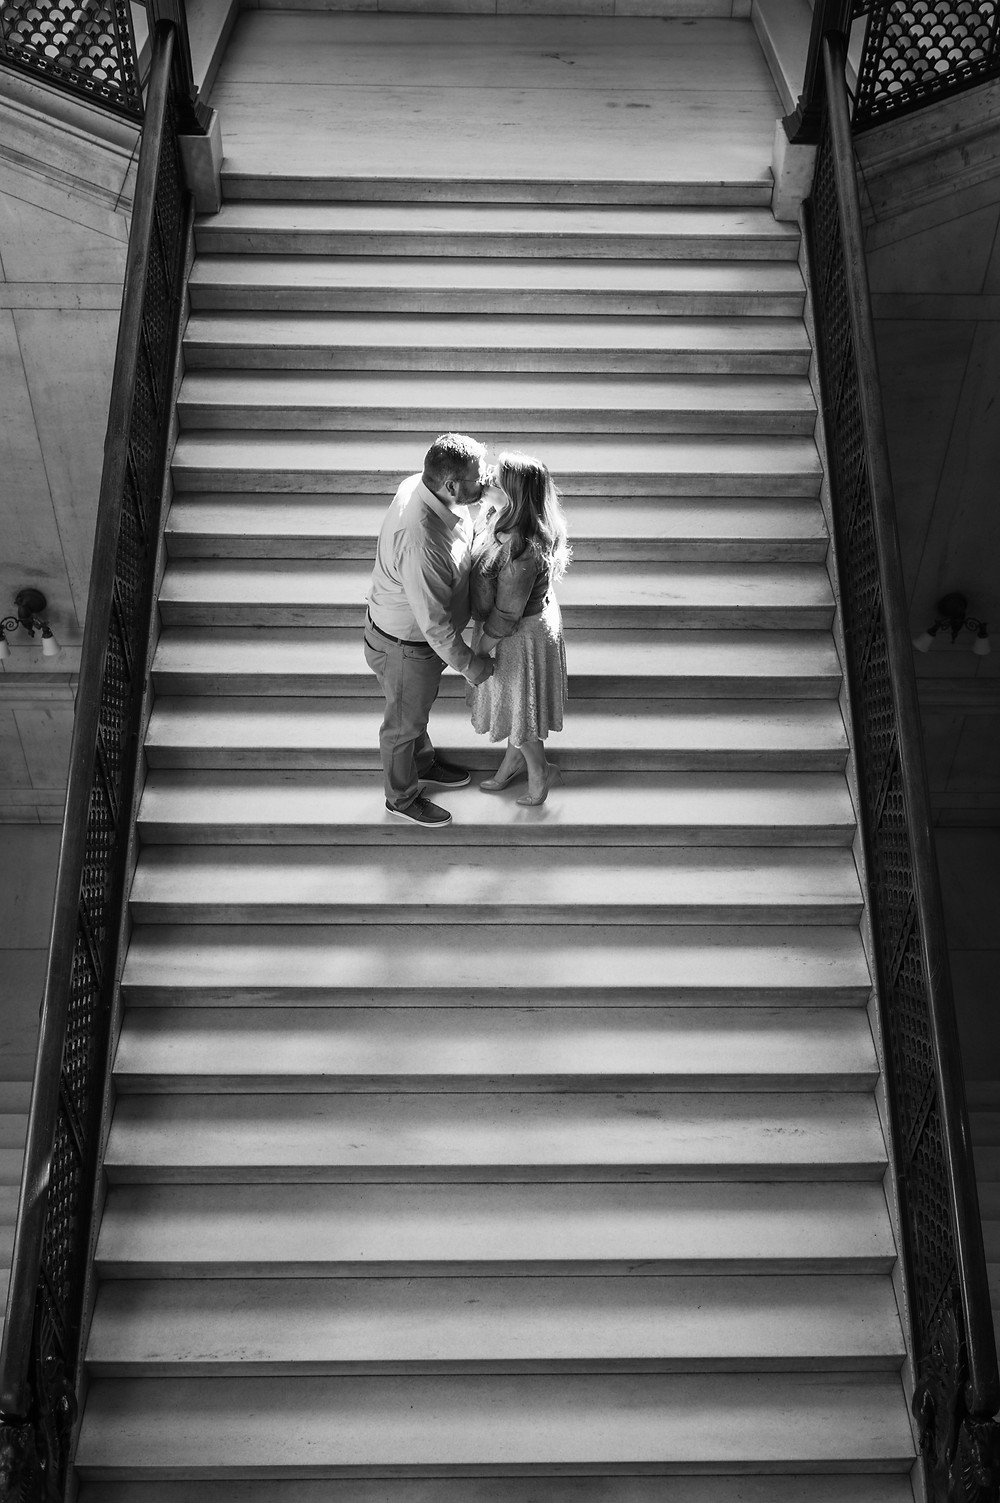 birds eye view of couple on staircase with dramatic shadows